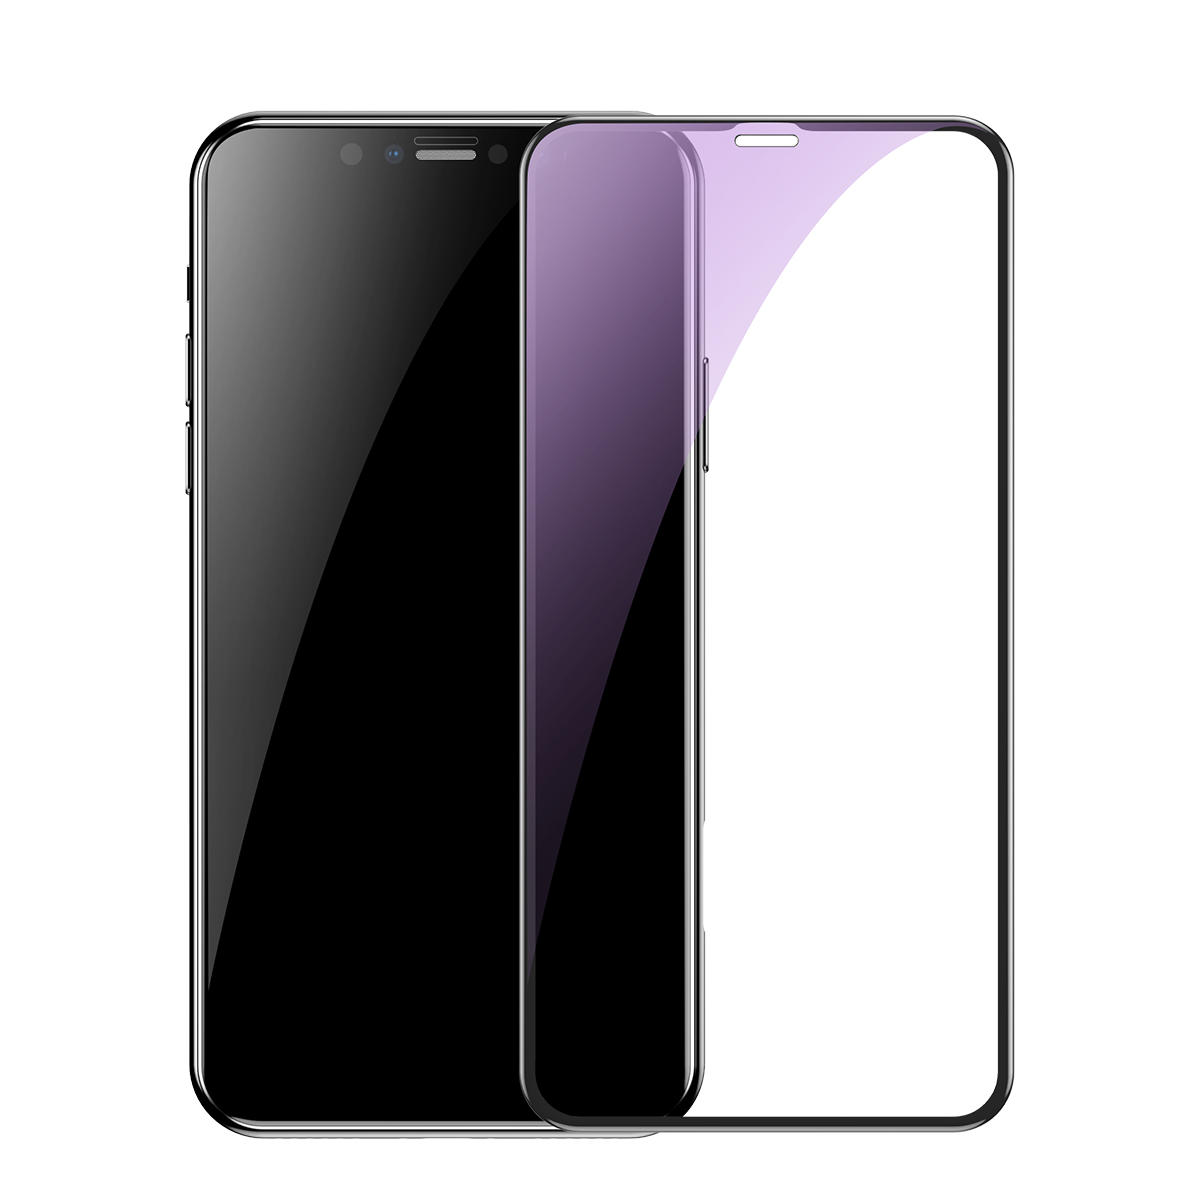 Baseus 0.3mm Full Glass Clear/Anti Blue Ray Light Scratch Resistant Tempered Glass Screen Protector For iPhone XR